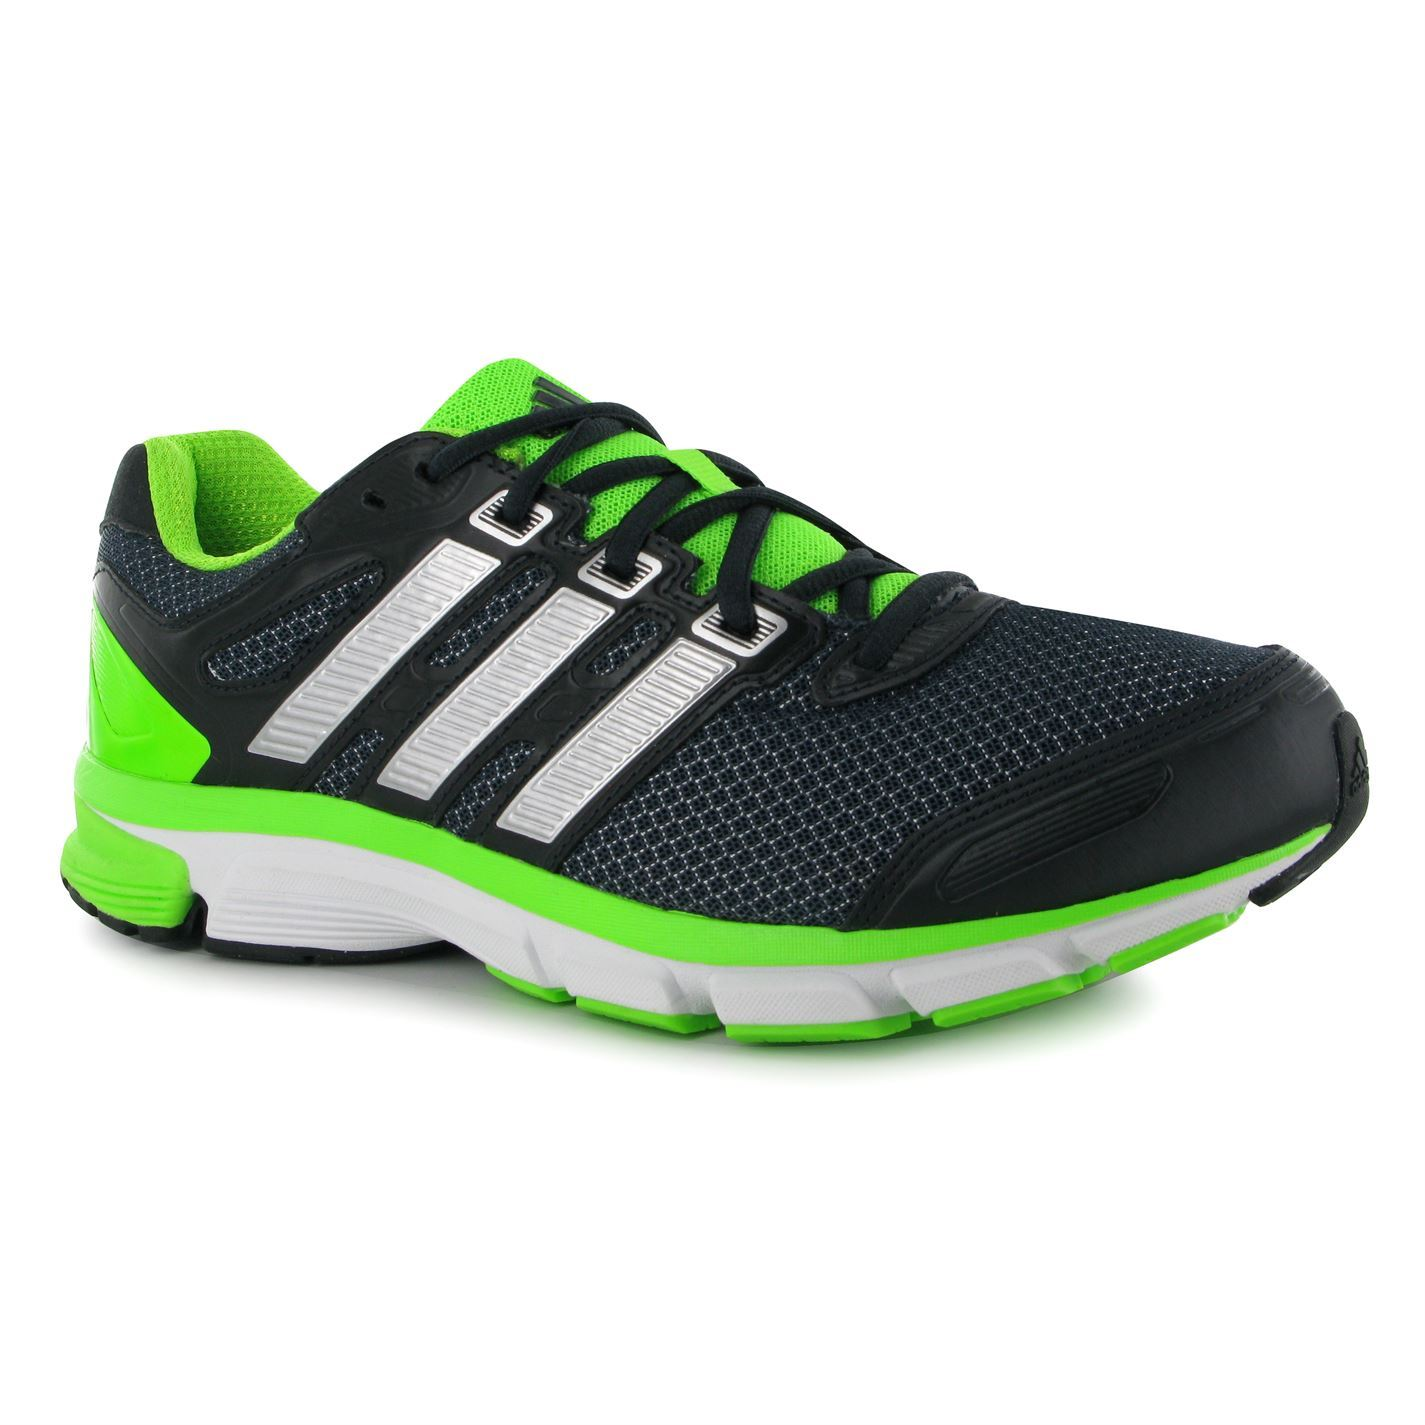 Adidas Womens Running Shoes Athletic Shoes Sportswear 1425x1425